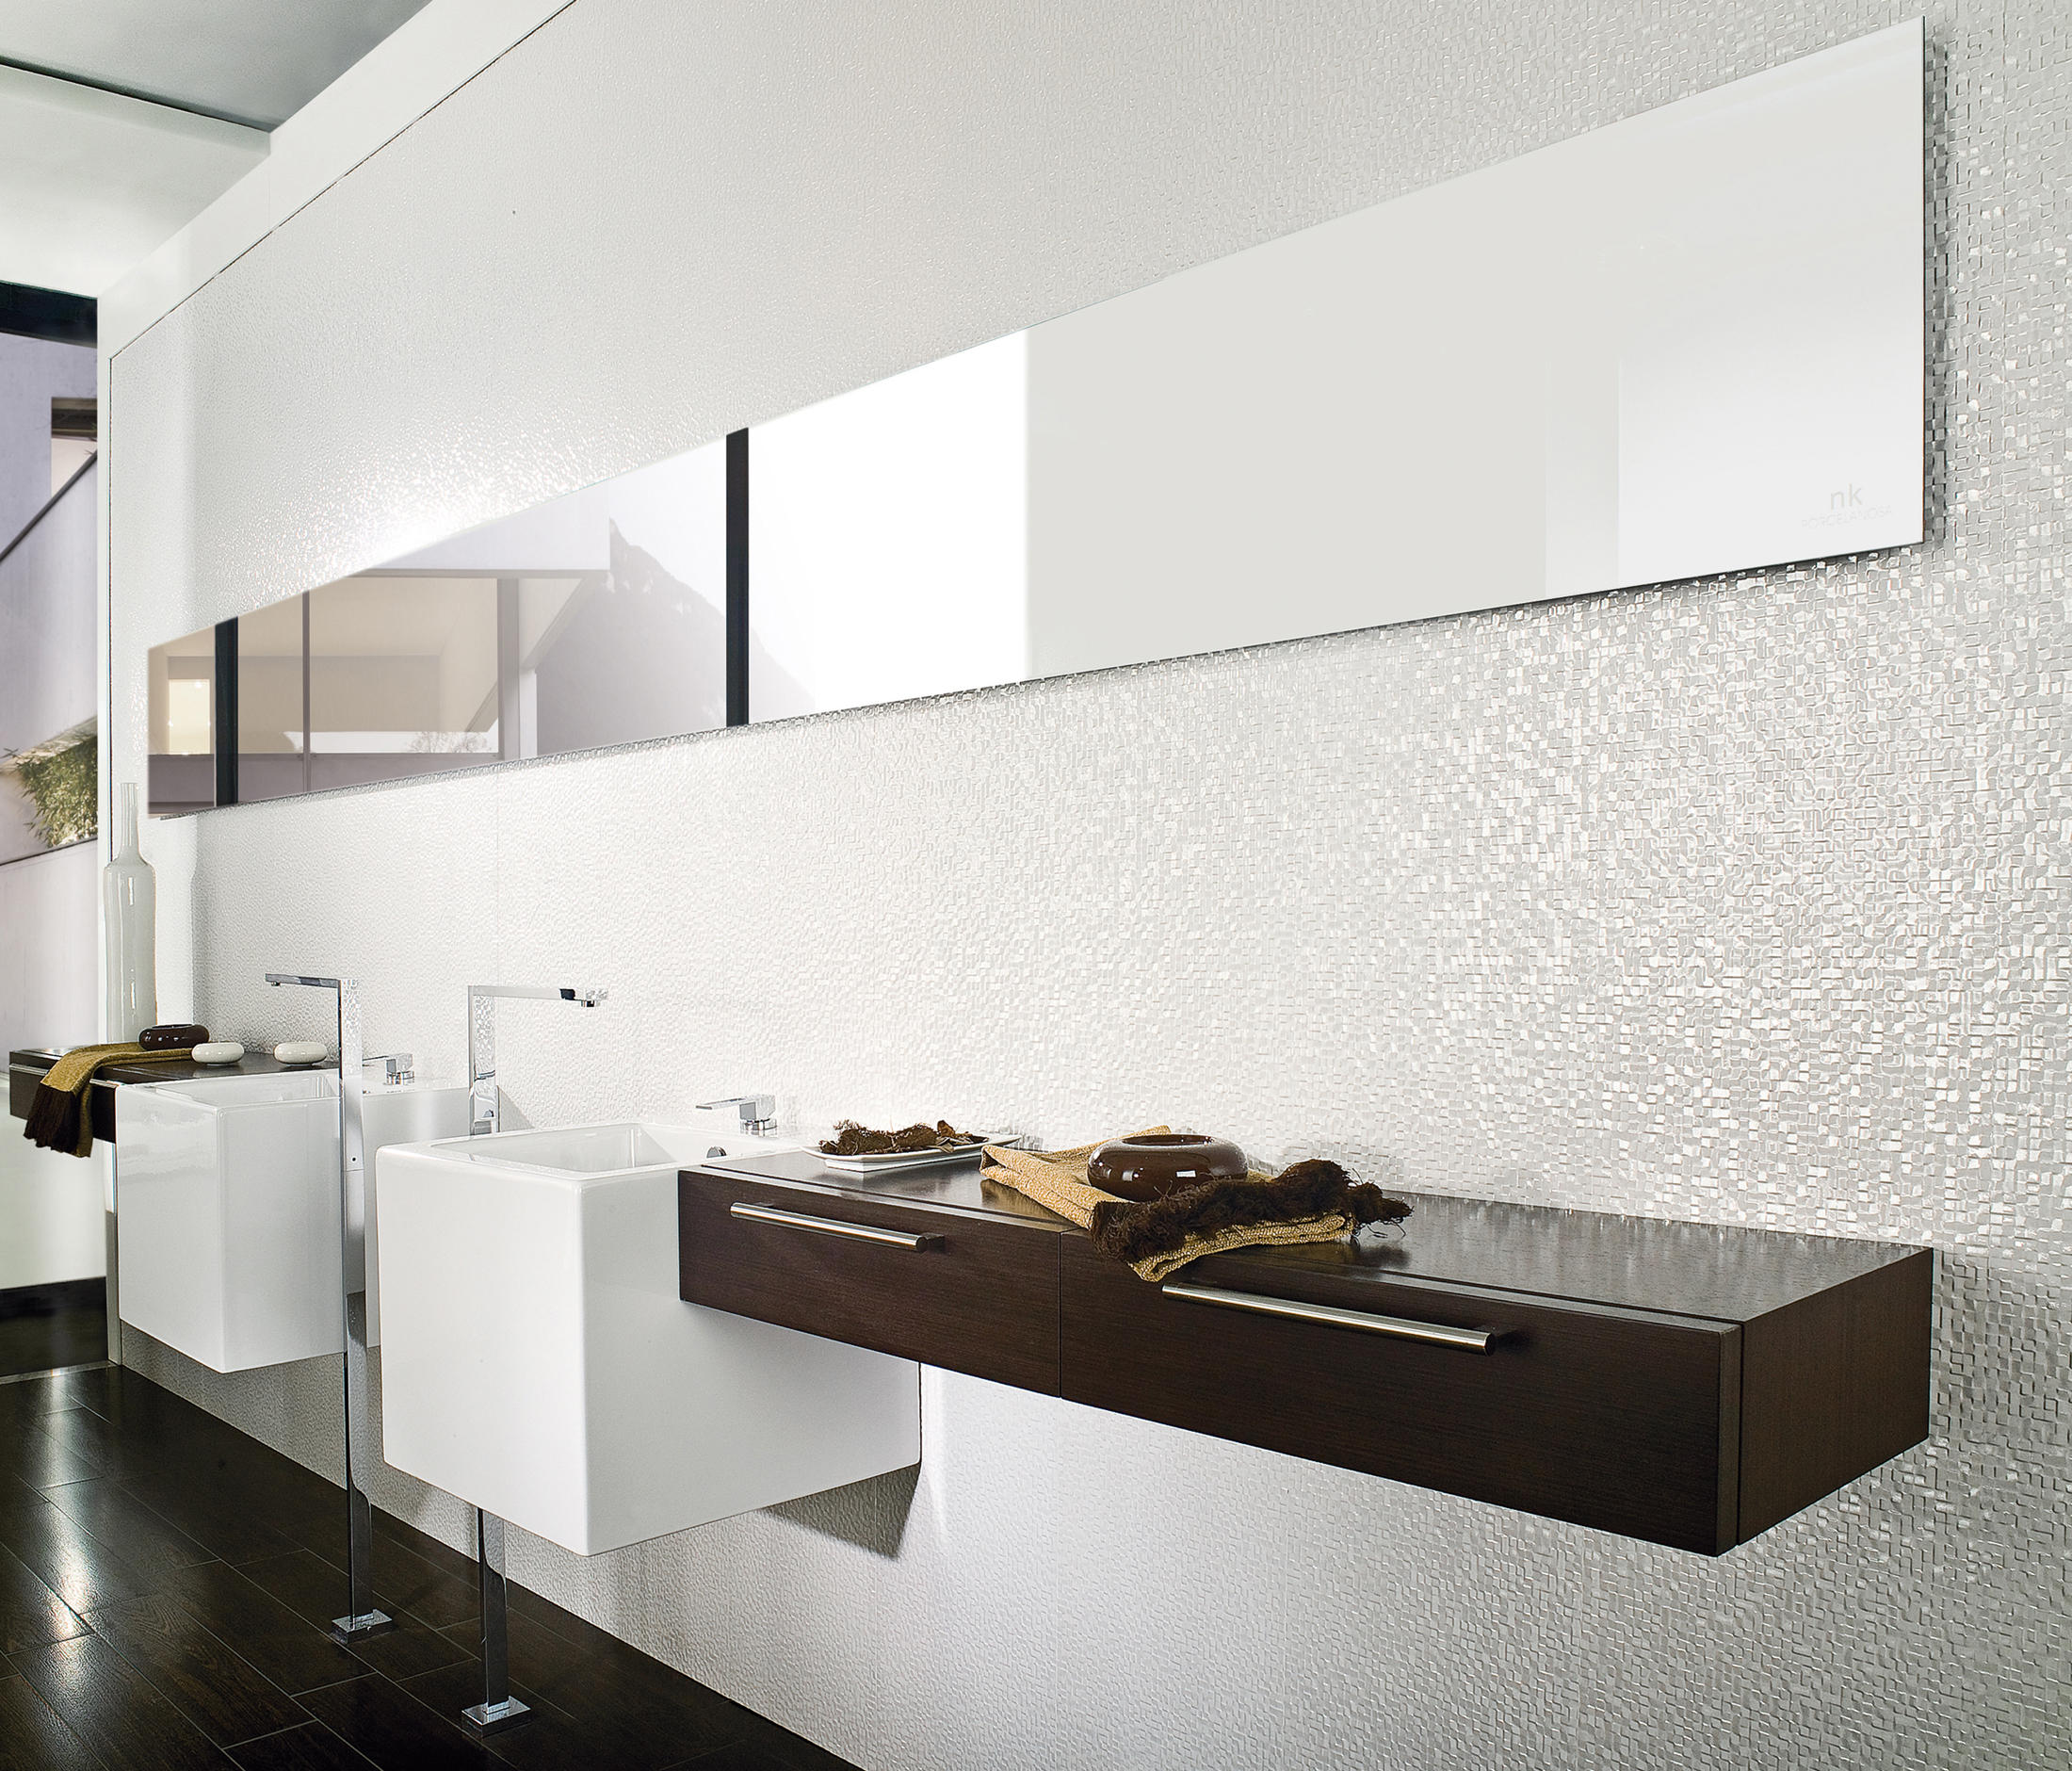 Porcelanosa Carrelage Cubica Blanco Ceramic Tiles From Porcelanosa Architonic